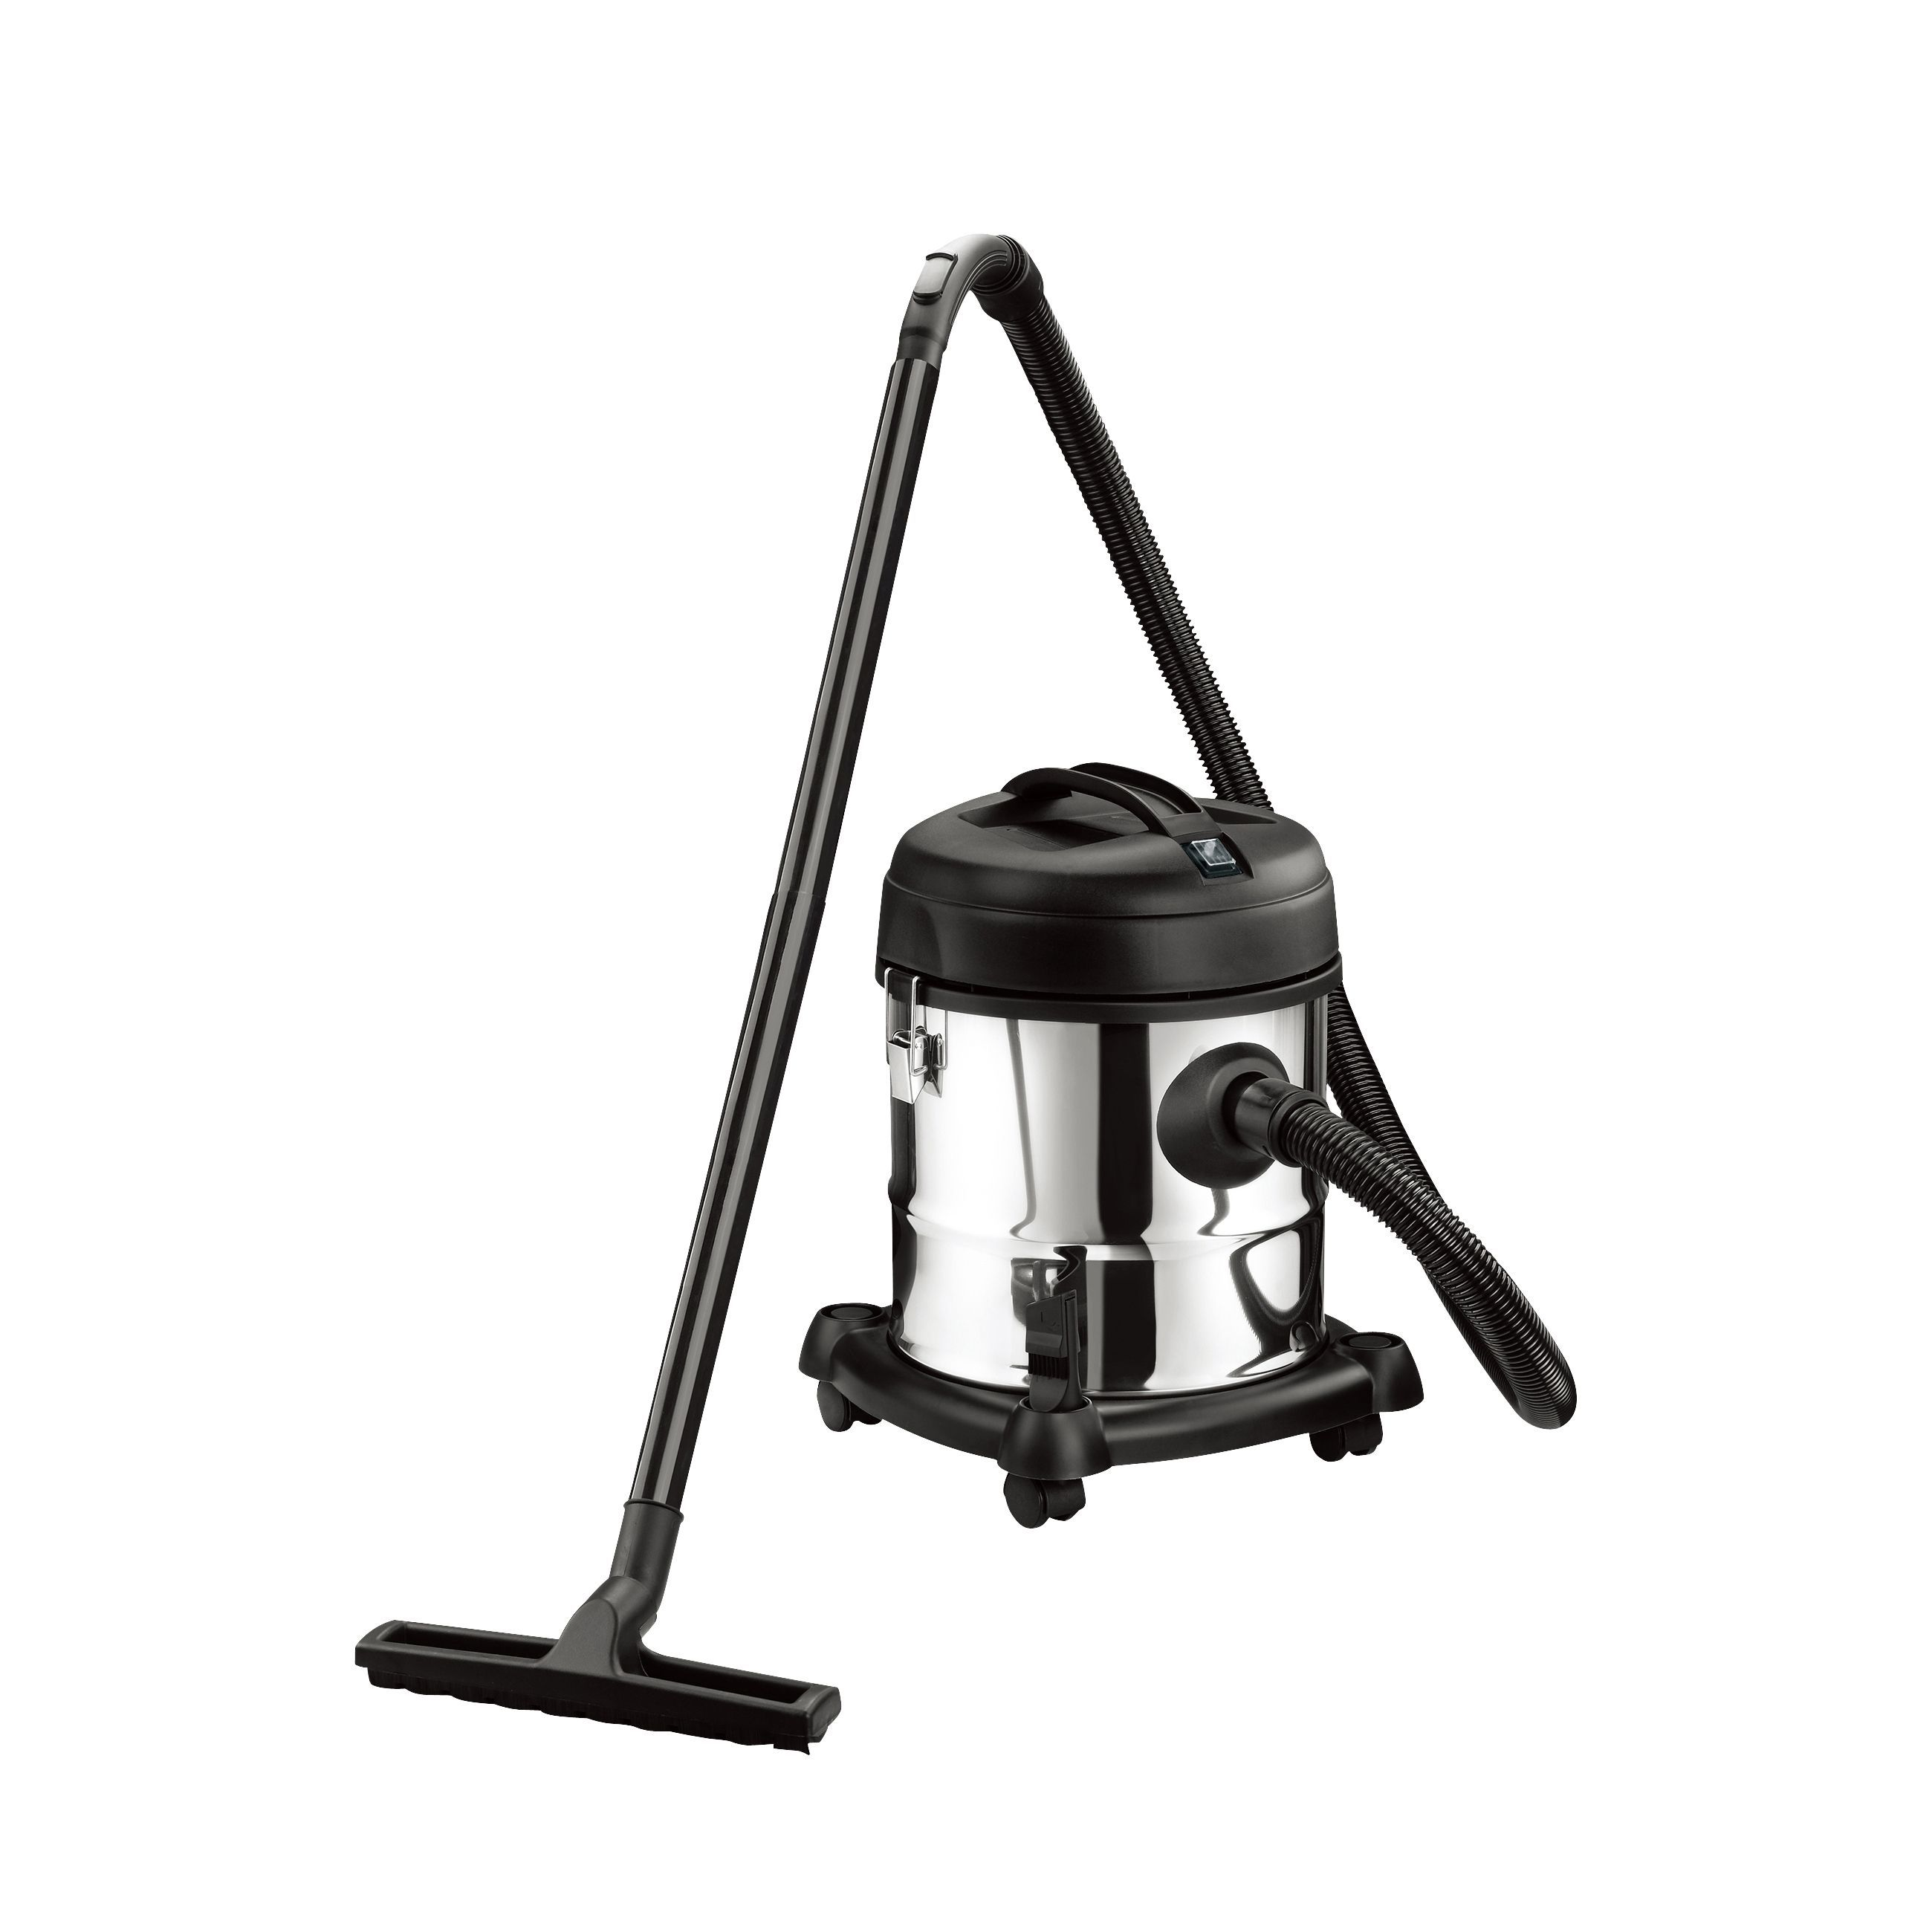 Performance Power Life Corded Bagged Wet & Dry Vacuum Cleaner K-402/12